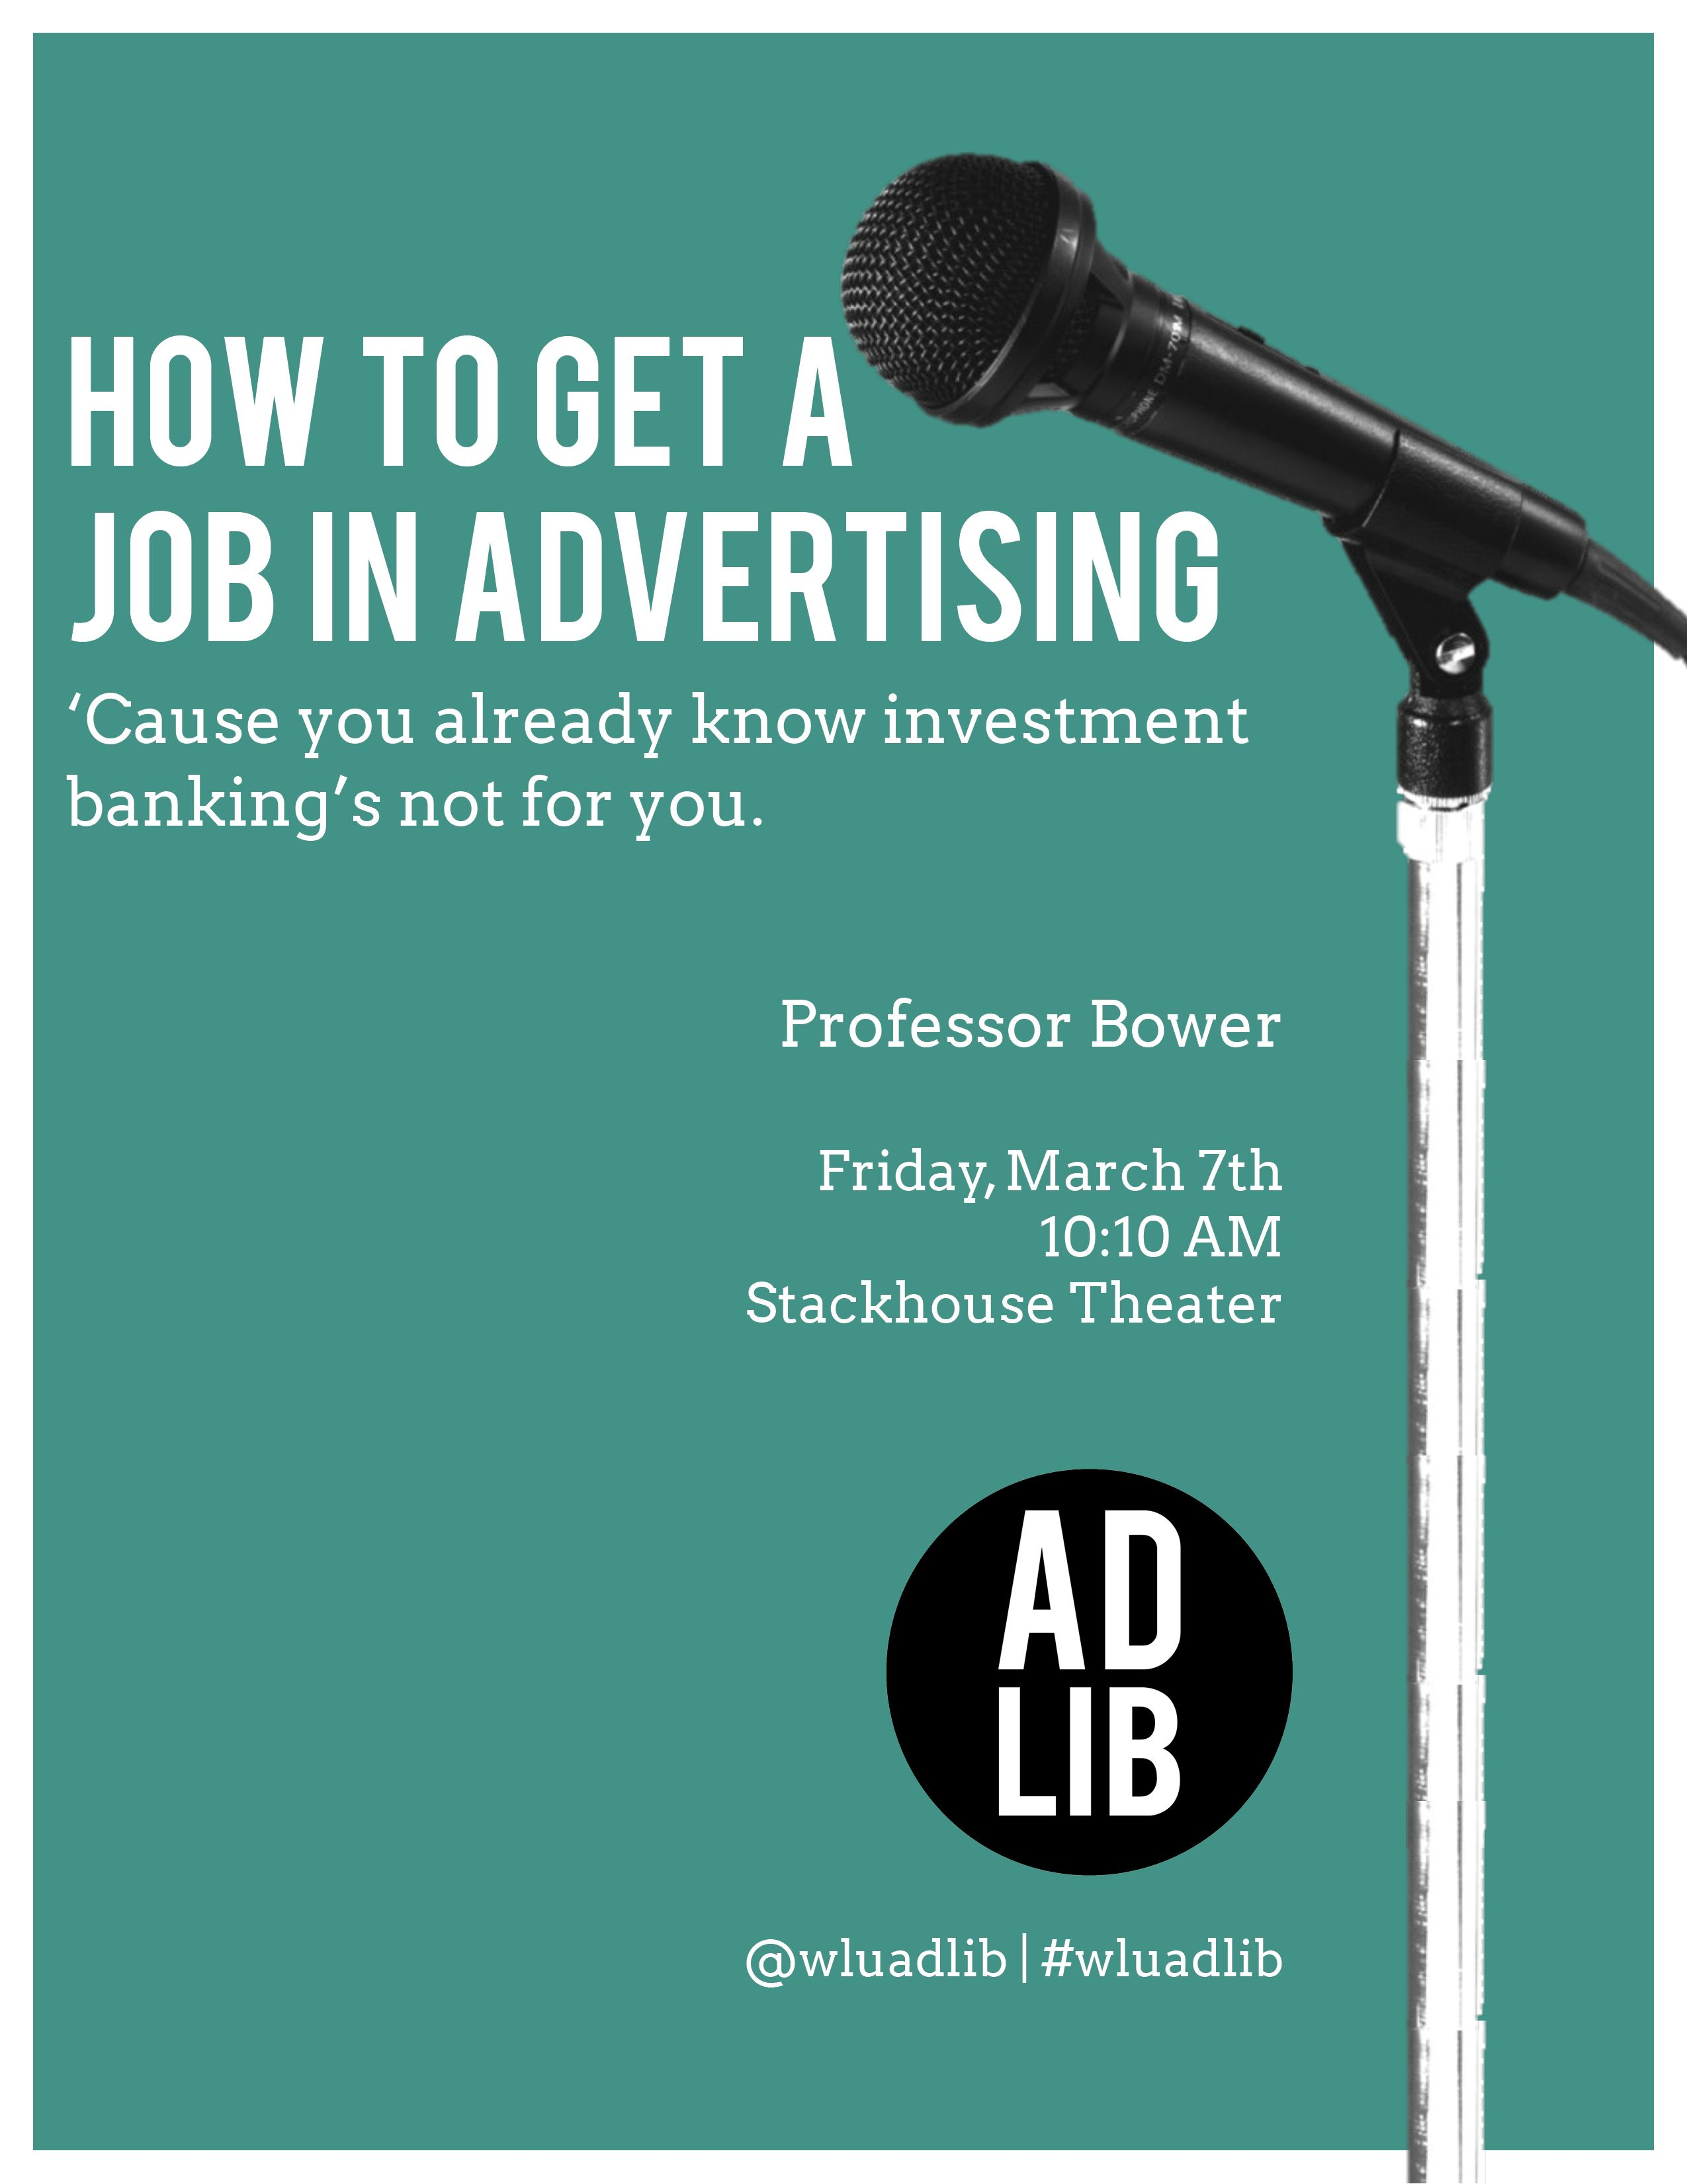 How To Get A Job In Advertising | AdLib Conference 2014